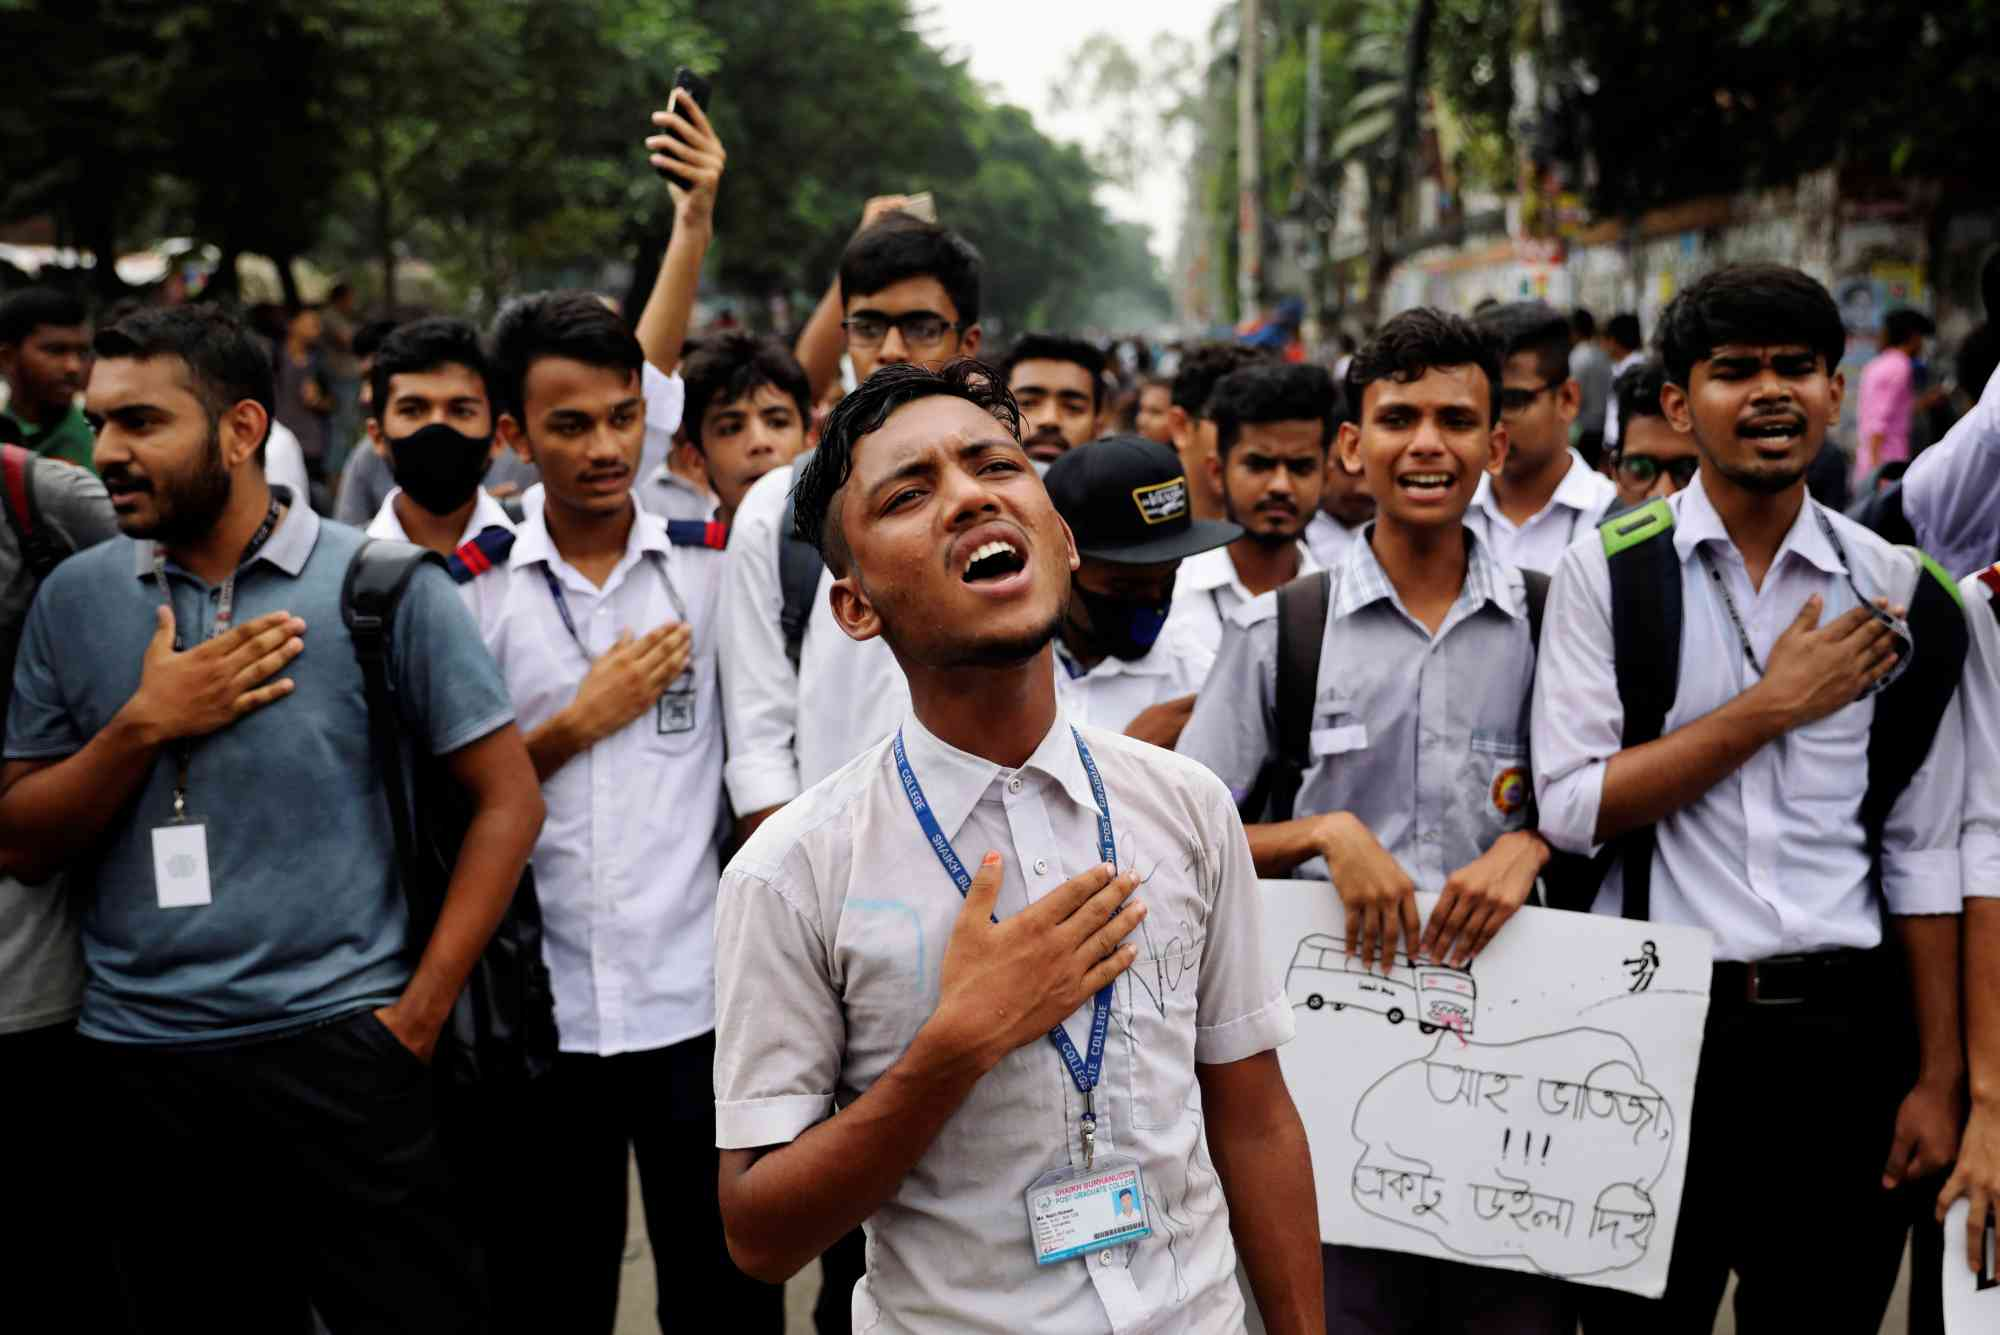 Bangladeshi students sing the national anthem as they take part in a protest over recent traffic accidents that killed two students, in Dhaka on August 4, 2018. (Photo credit: Mohammad Ponir Hossain/Reuters).